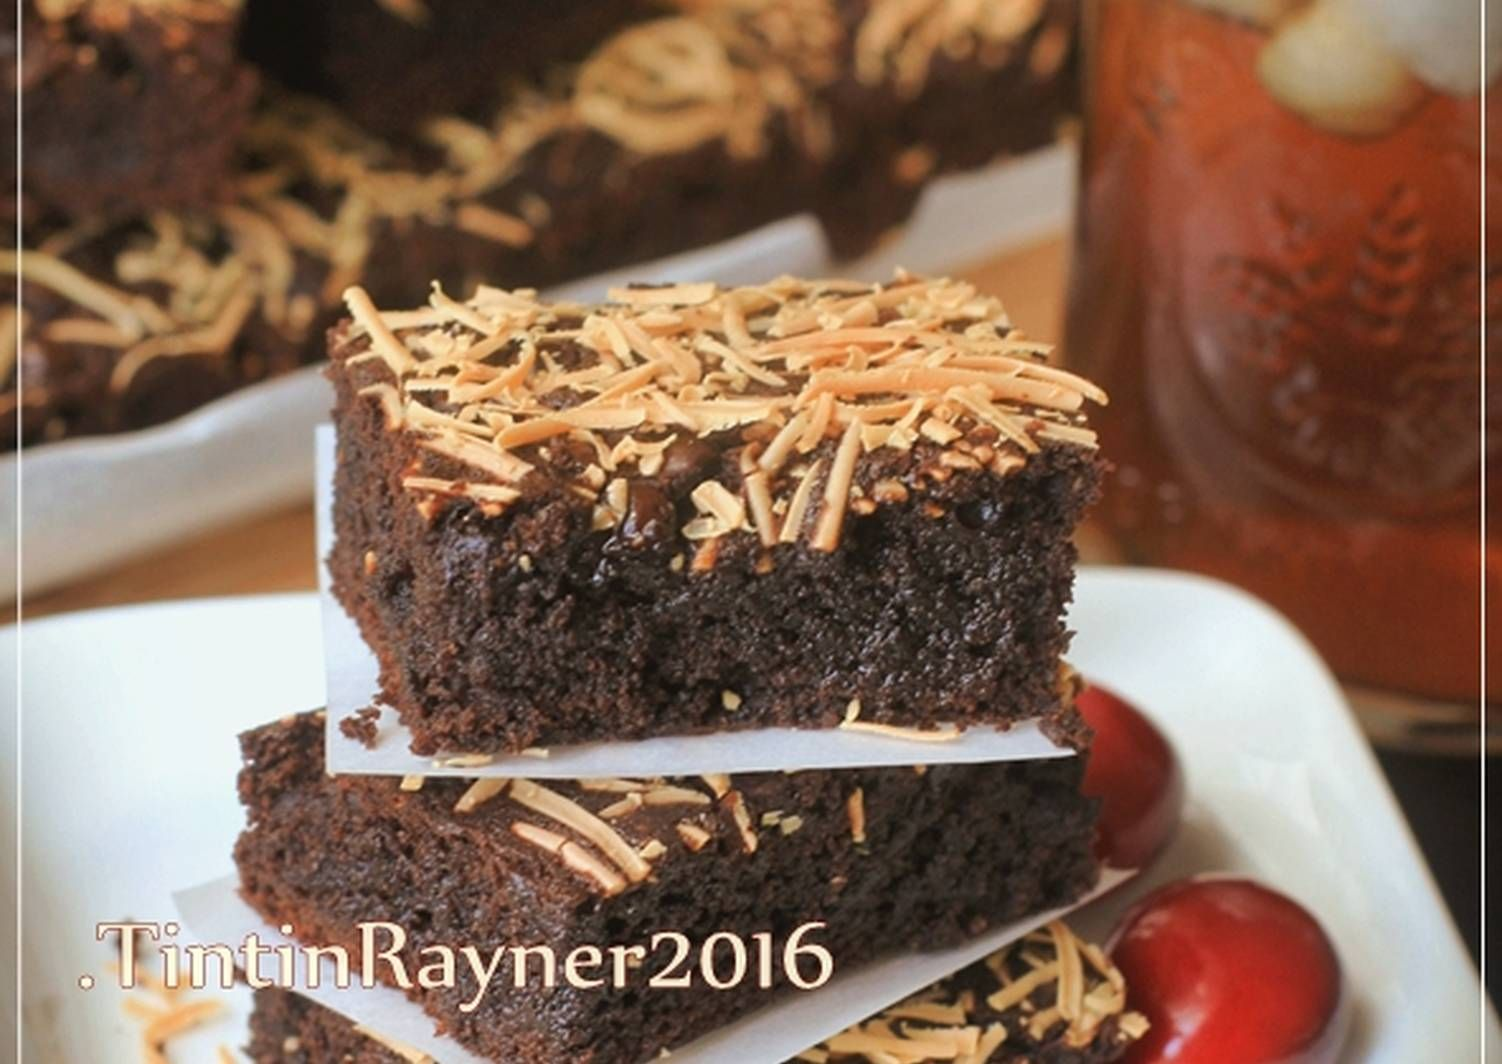 Resep Brownies Cokelat Moist Yummy No Bp Soda Kue Oleh Tintin Rayner Resep Fudge Brownies Brownies Cokelat Cokelat